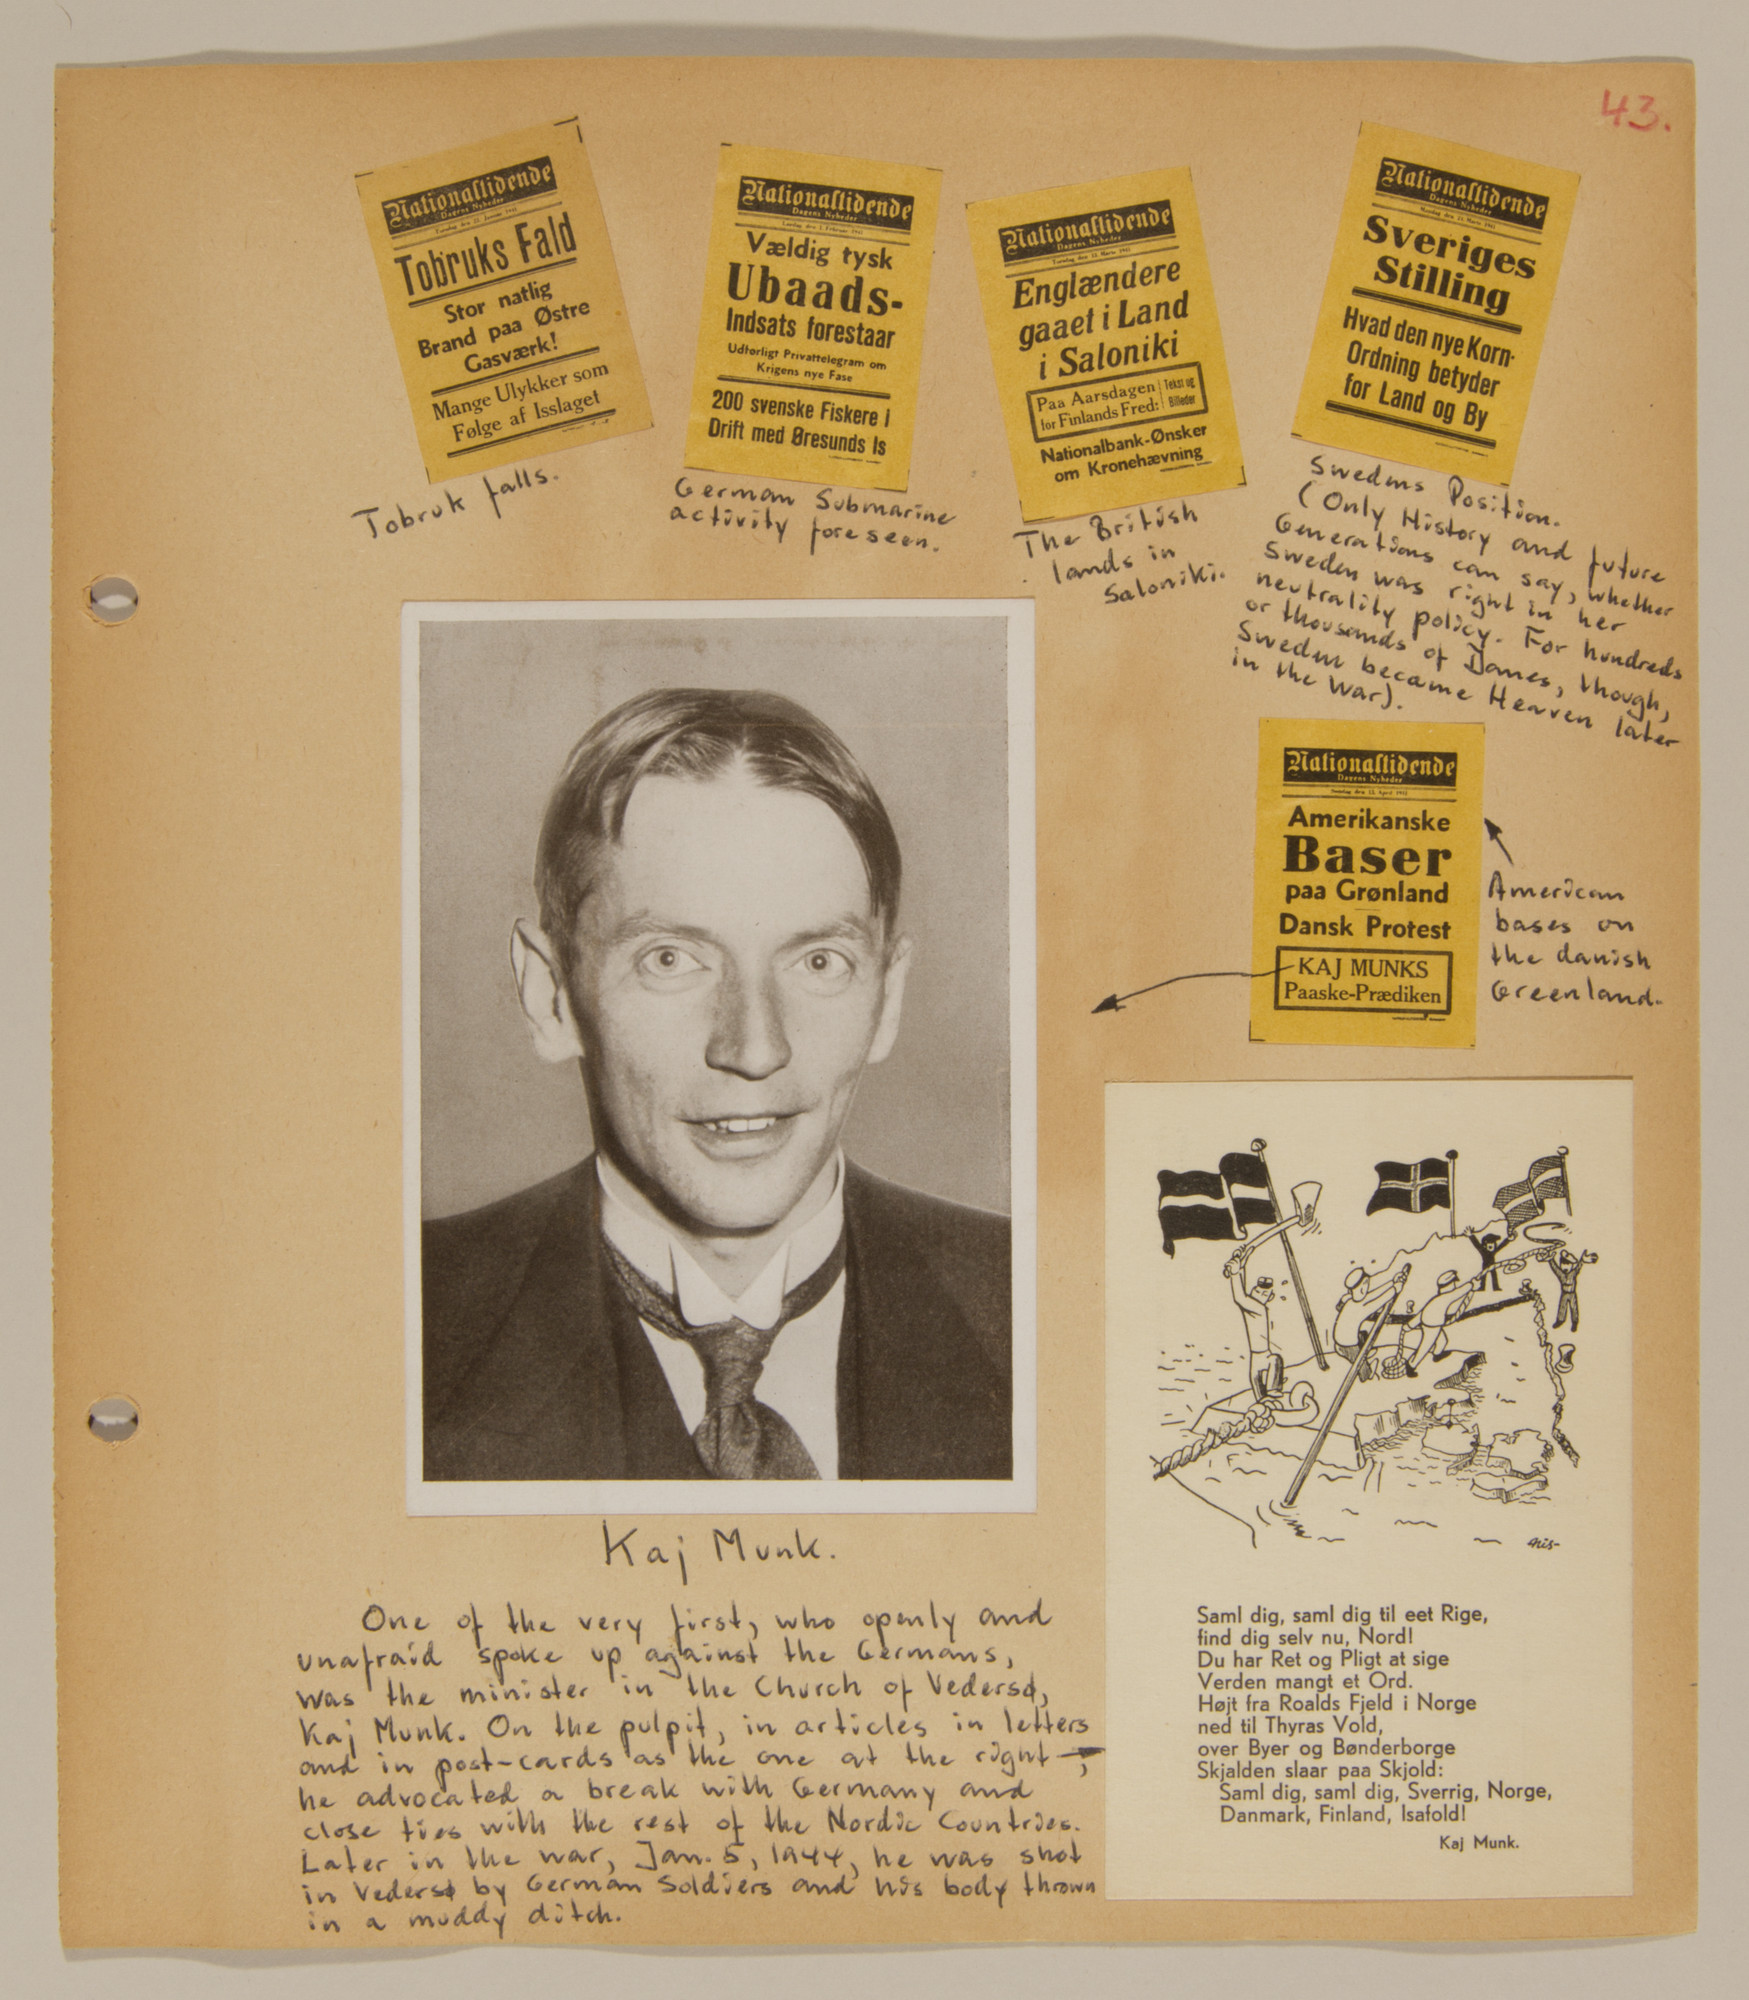 Page from volume one of a set of scrapbooks compiled by Bjorn Sibbern, a Danish policeman and resistance member, documenting the German occupation of Denmark.  The page has a photograph of Kaj Munk, an anti-Nazi leader.